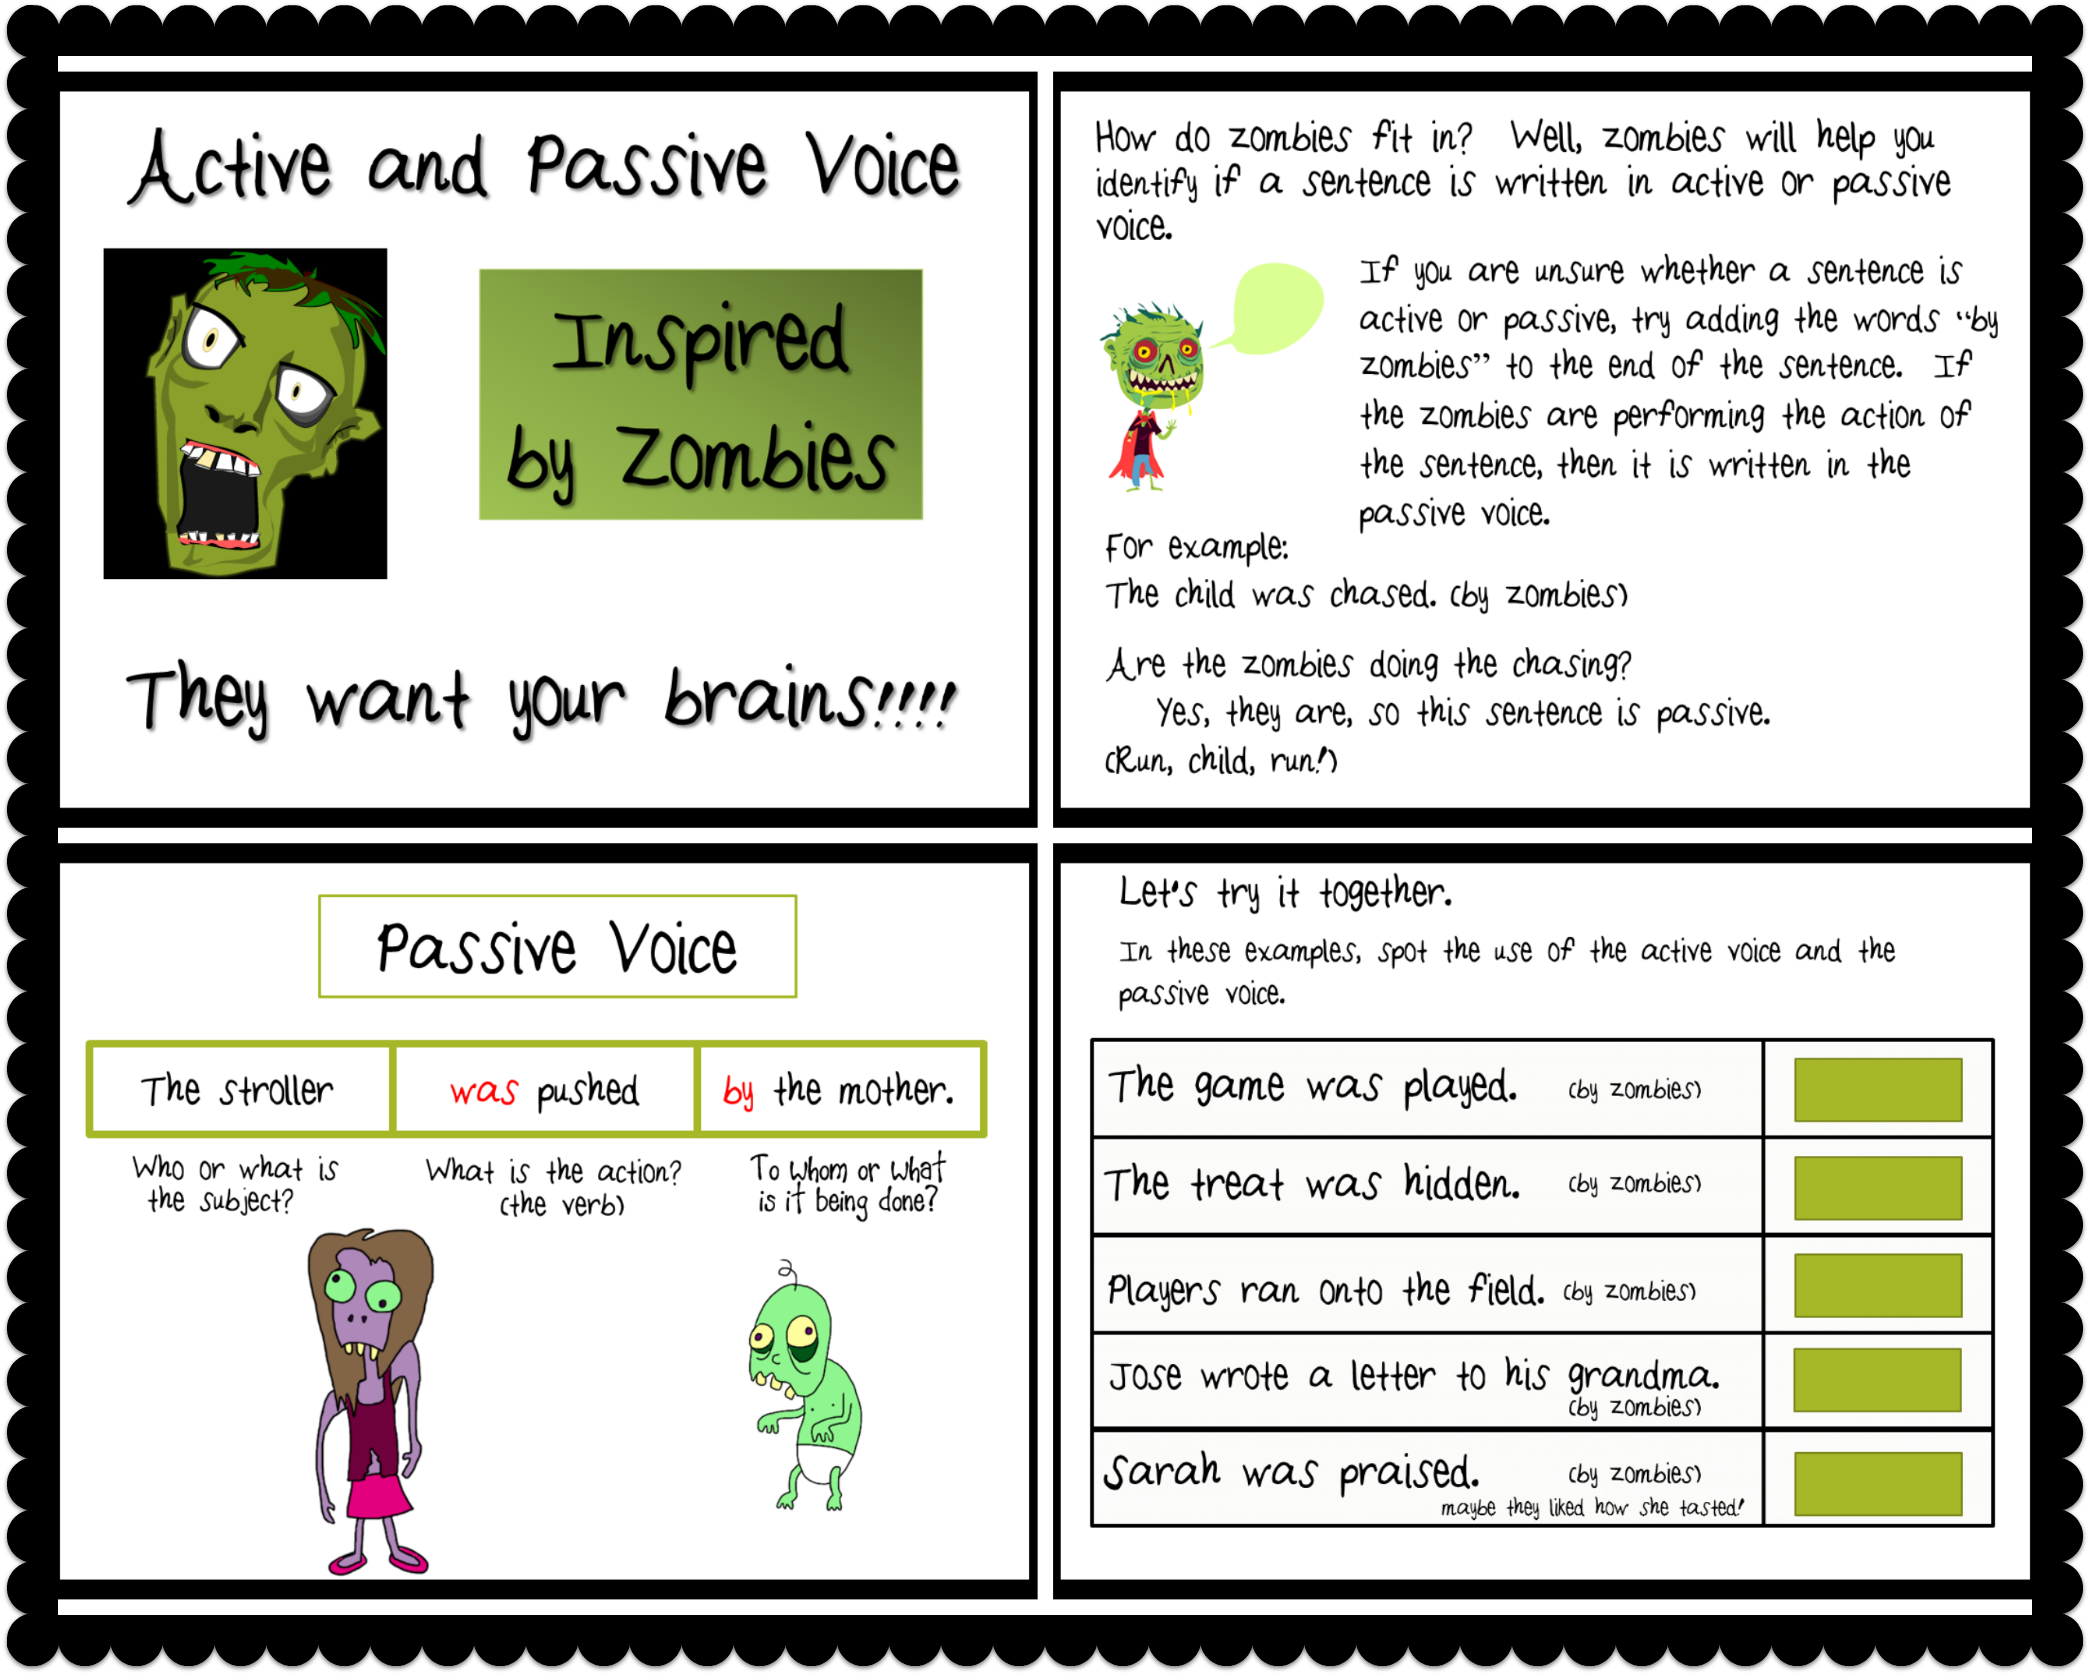 Active and Passive Voice with Zombies PowerPoint   Student, The o ...